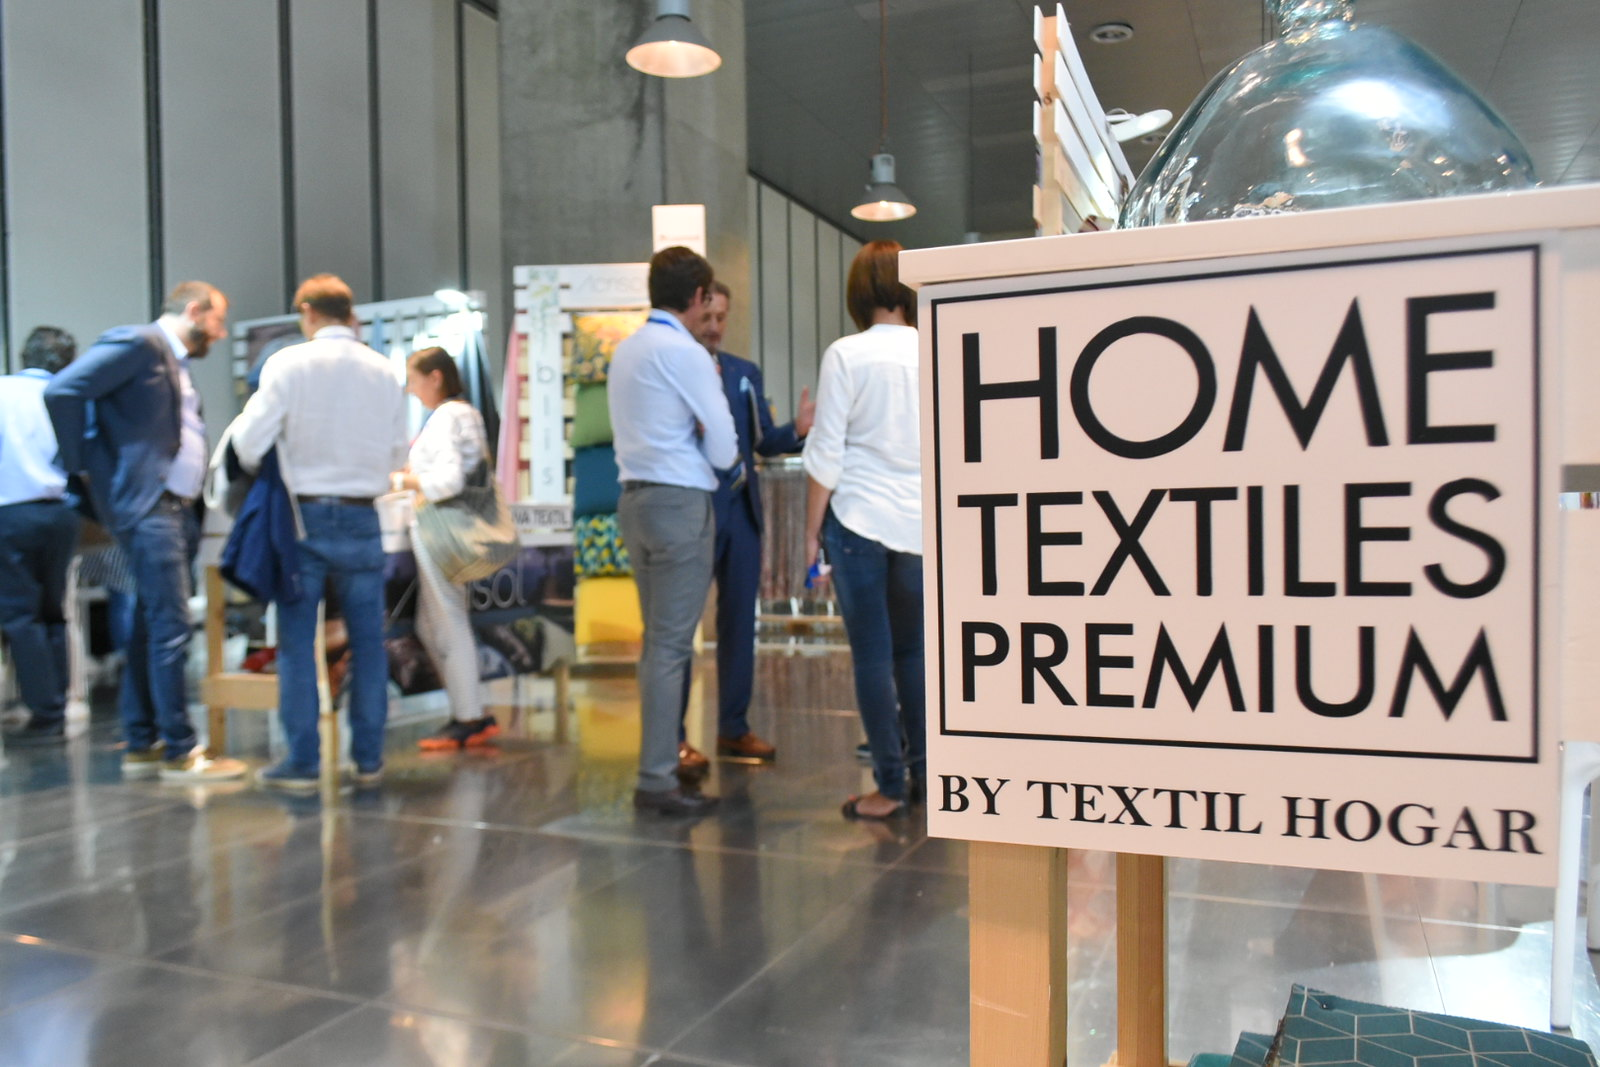 Home Textiles Premium by Textilhogar moves this September's fair to 2021